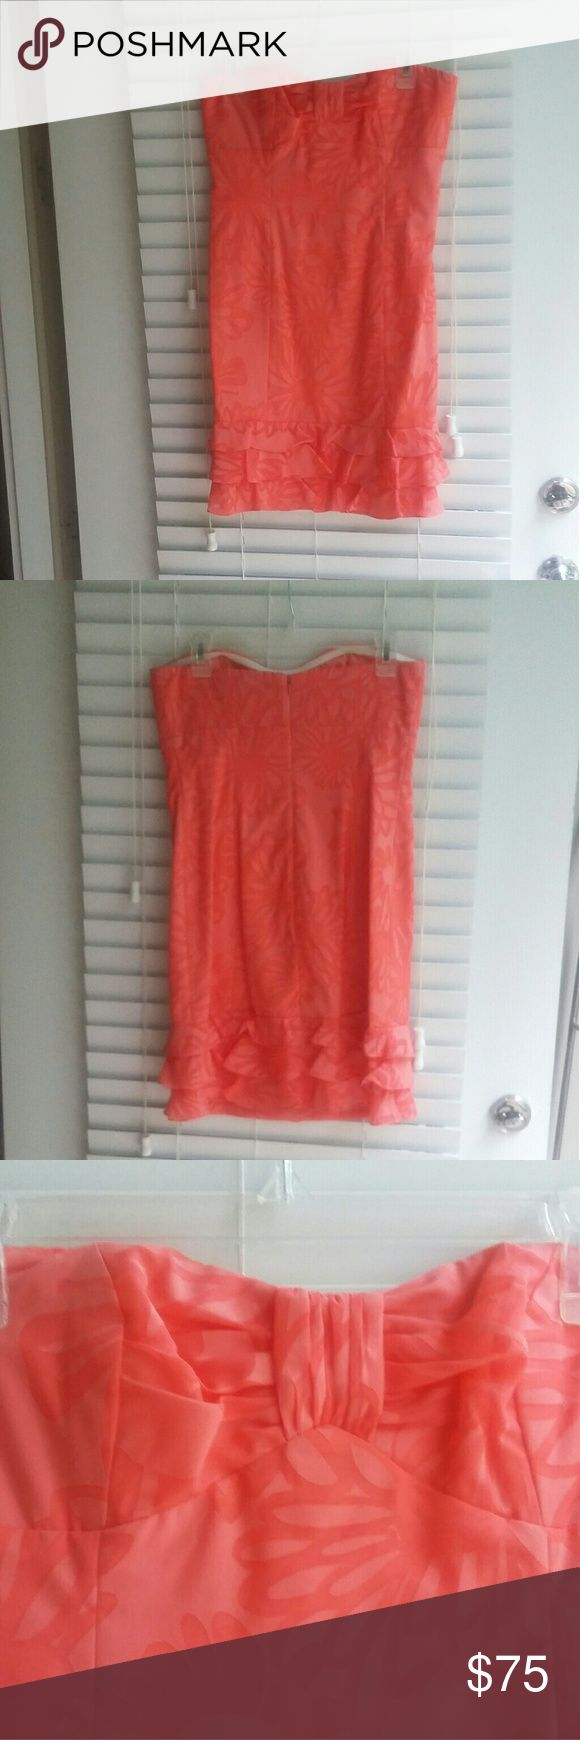 Lily Pulitzer Coral Sundress Adorable strapless sundress with mermaid neckline and ruffles at the bottom. Color is a peachy coral - perfect for spring and summer. Worn 1 time. Lilly Pulitzer Dresses Strapless